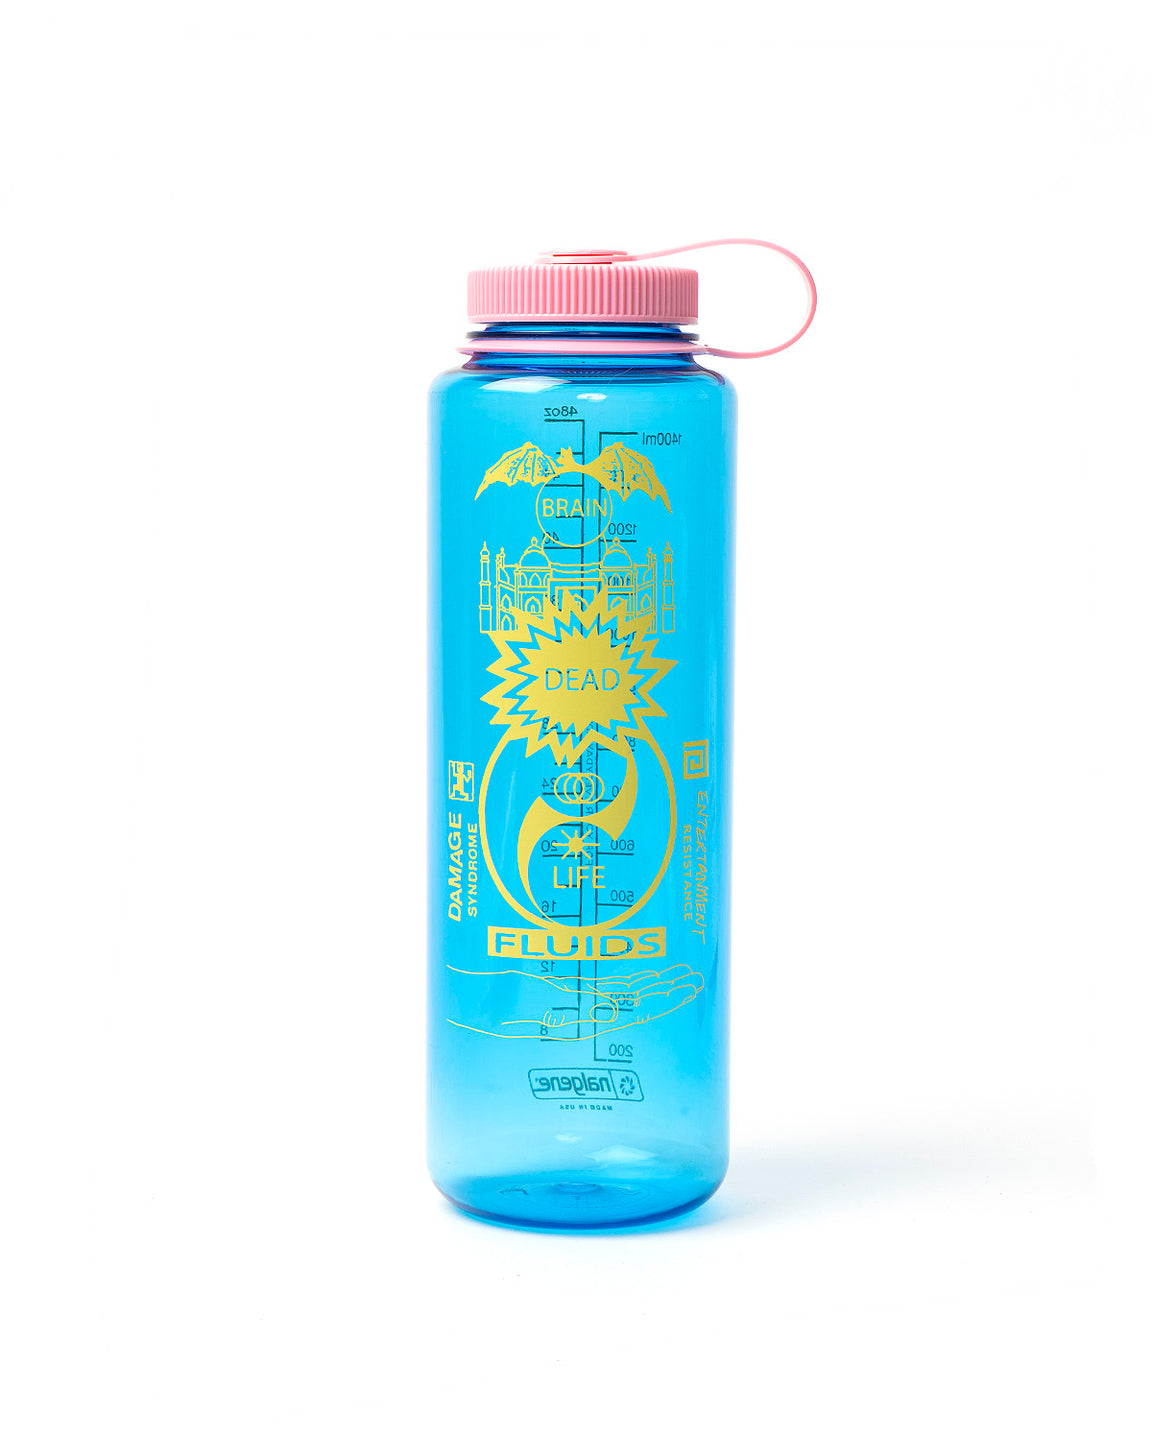 Life Fluids 48Oz Water Bottle - Slate Blue/Pink - Brain Dead